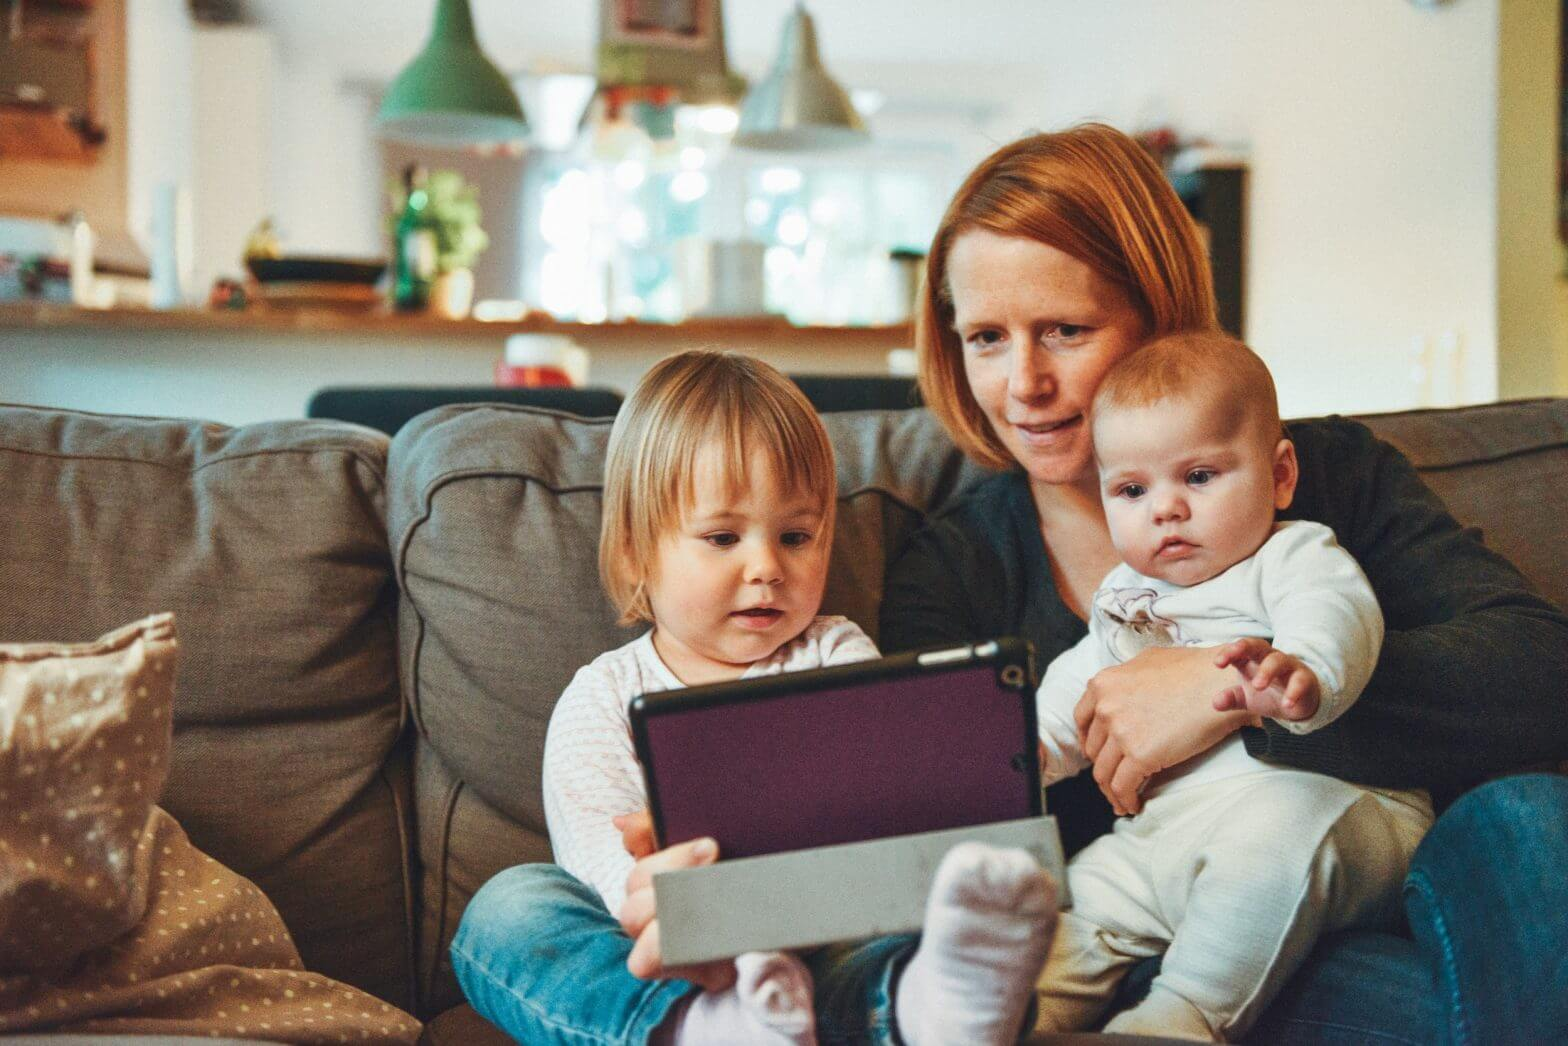 Mom on the couch with two children engaging in parent-teacher communication on a tablet.